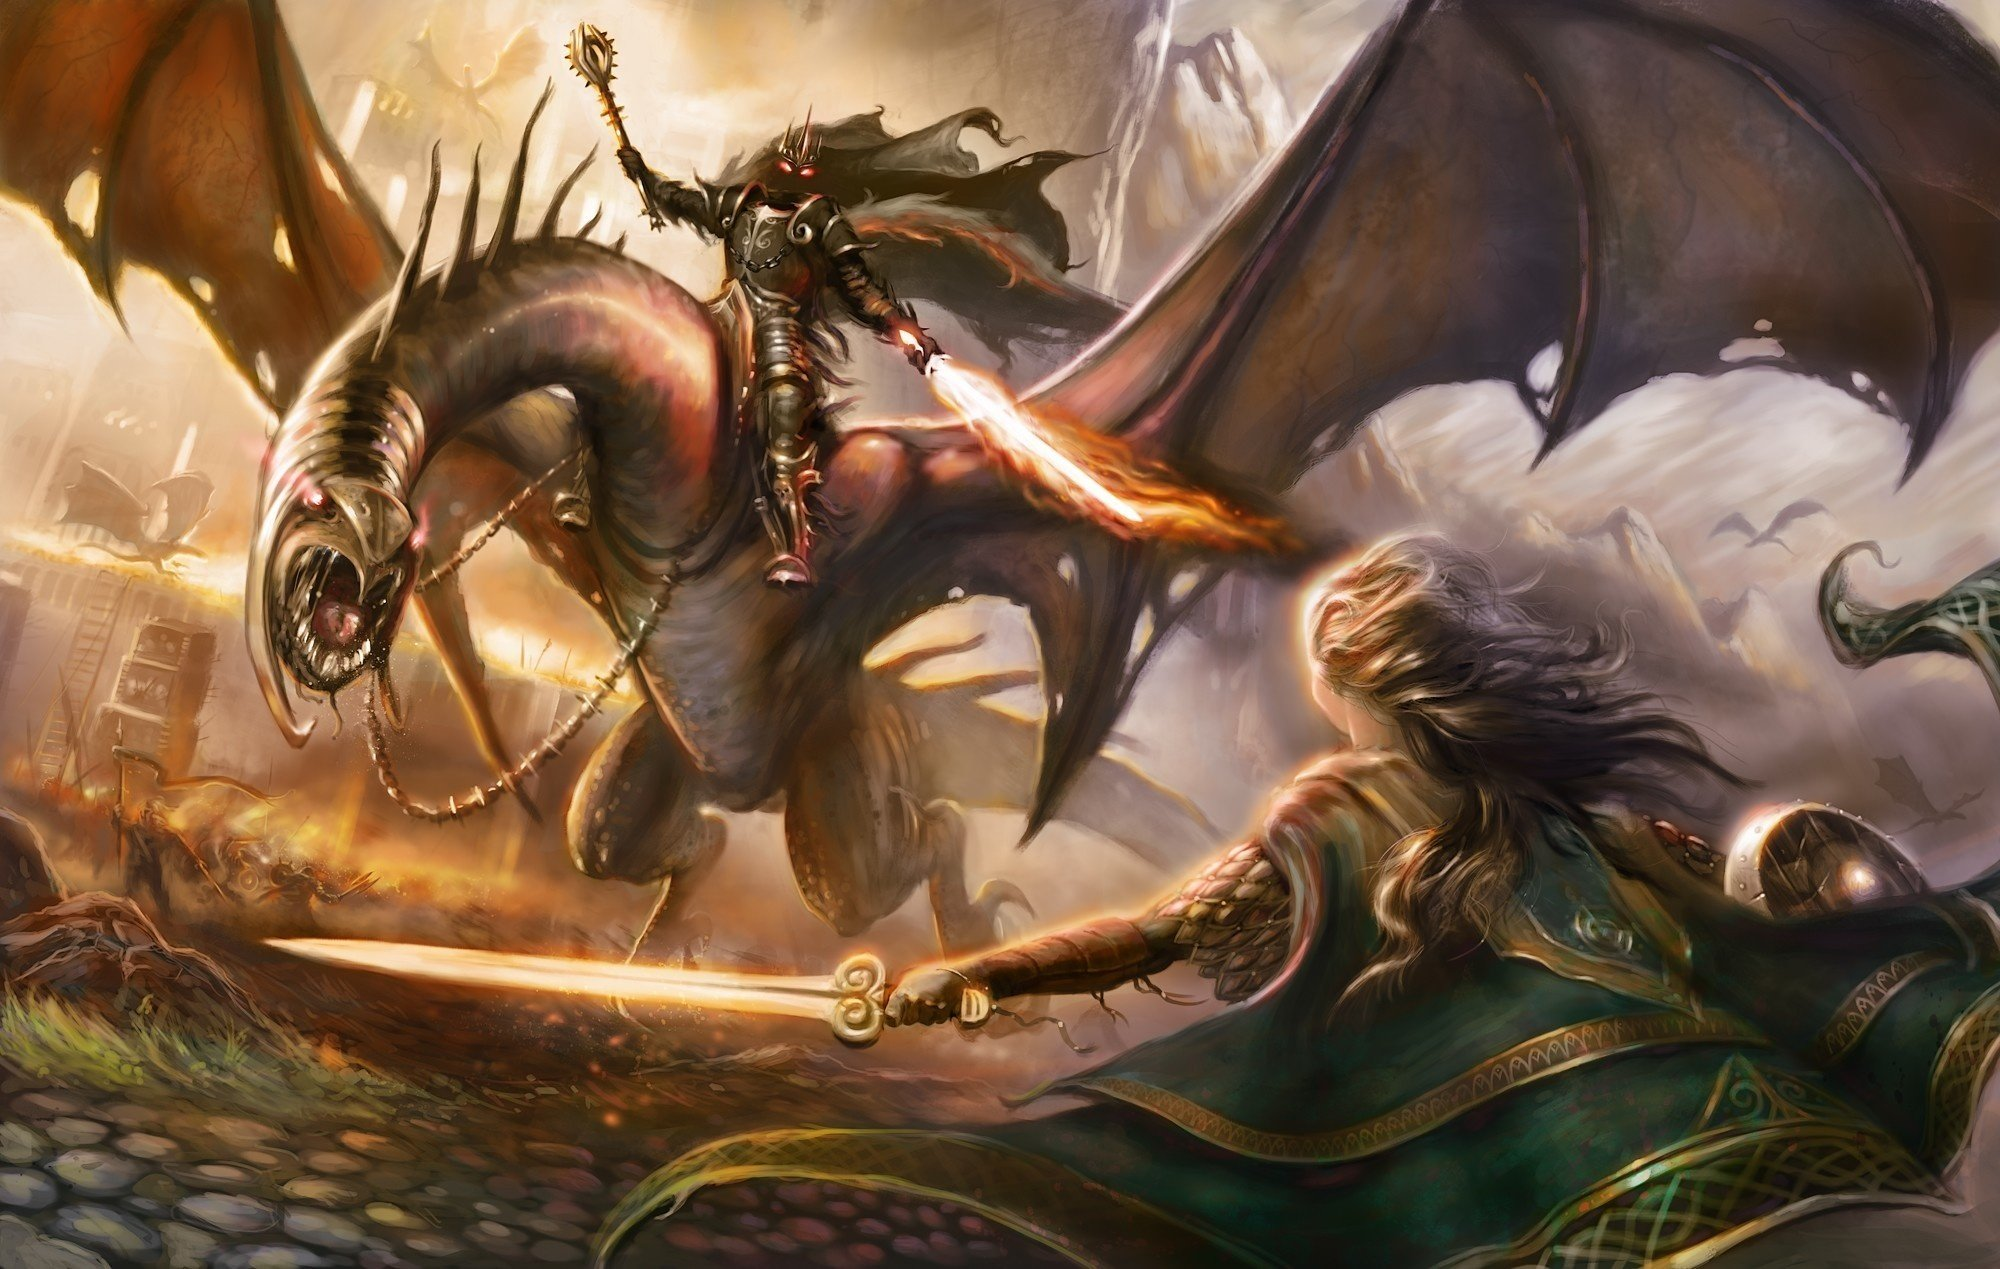 Beautiful Wallpaper Lord Dragon - b9e0062d9e953a465428679f9c6aec9a  Perfect Image Reference_113615.jpg